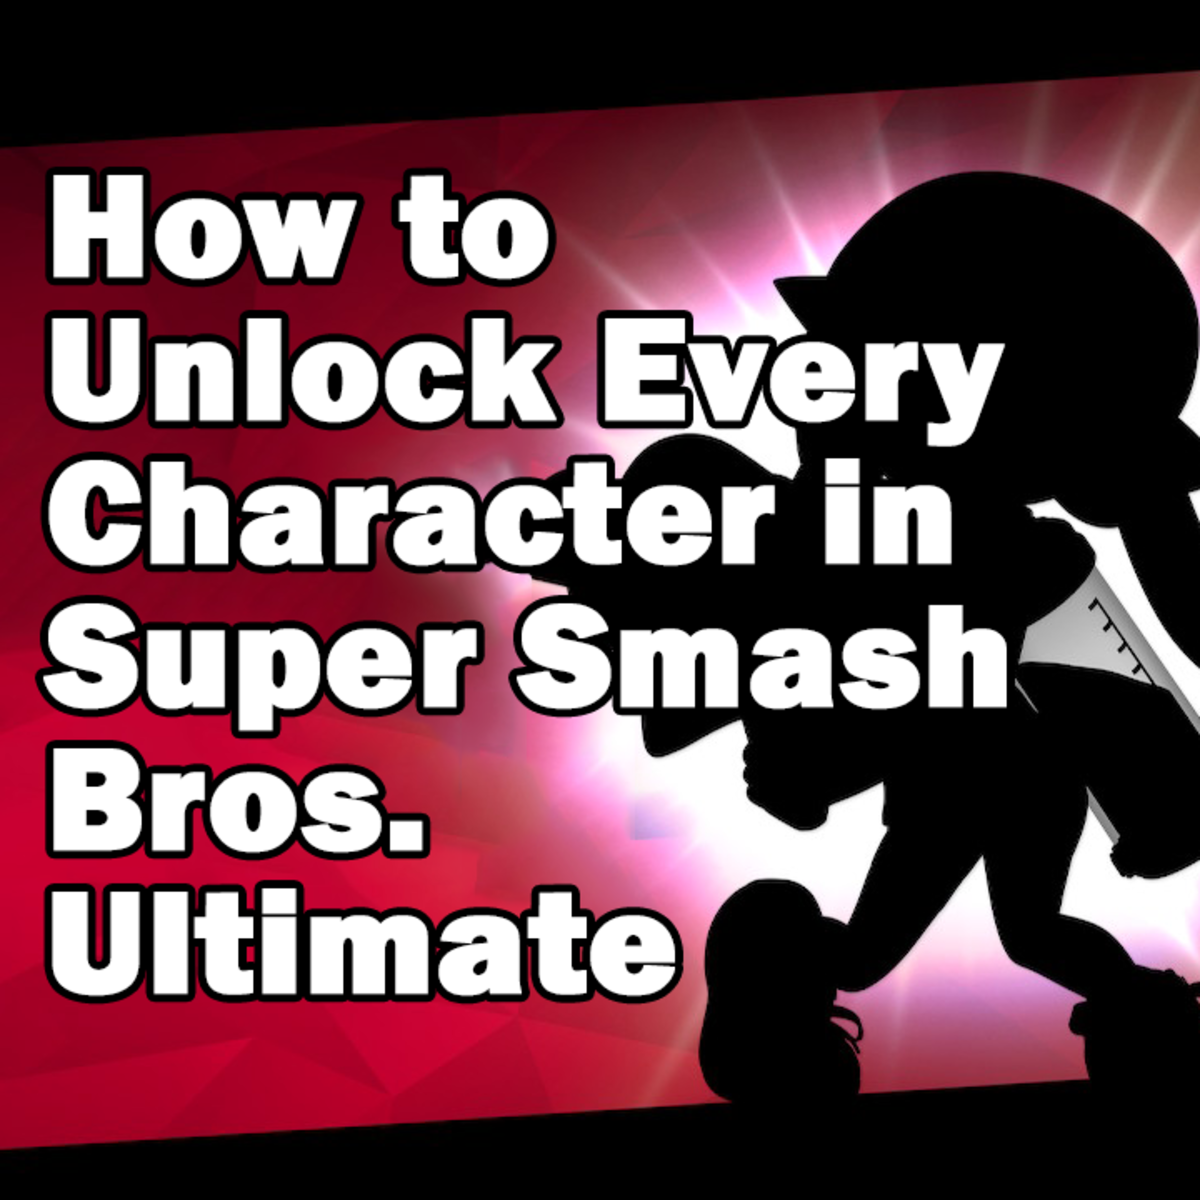 How to Unlock Every Character in Super Smash Bros. Ultimate